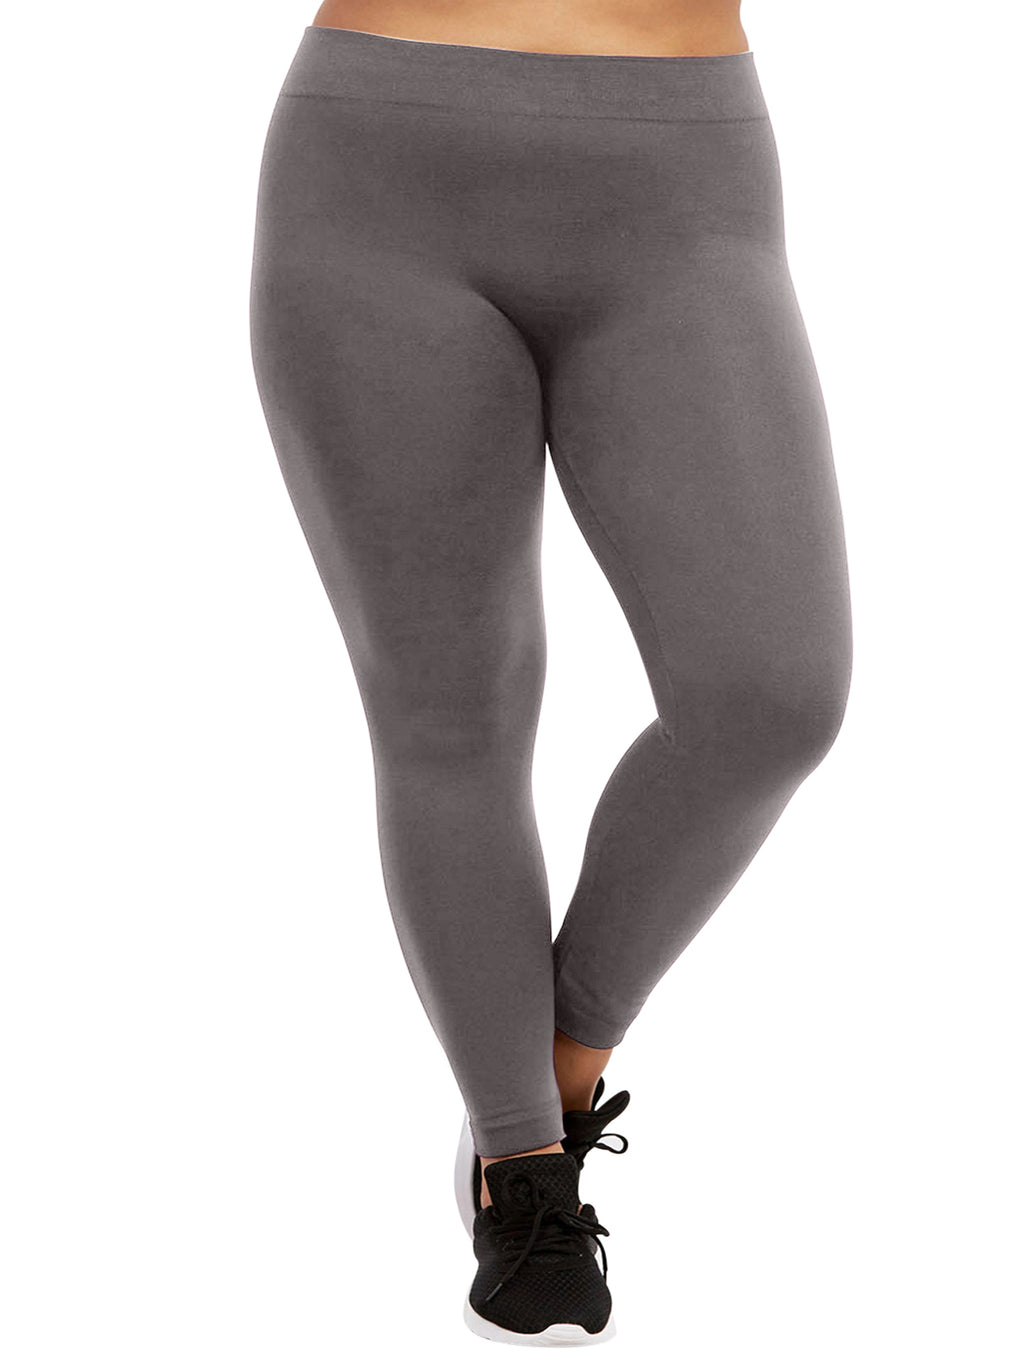 Plus Size Charcoal Gray Fleece Lined Leggings